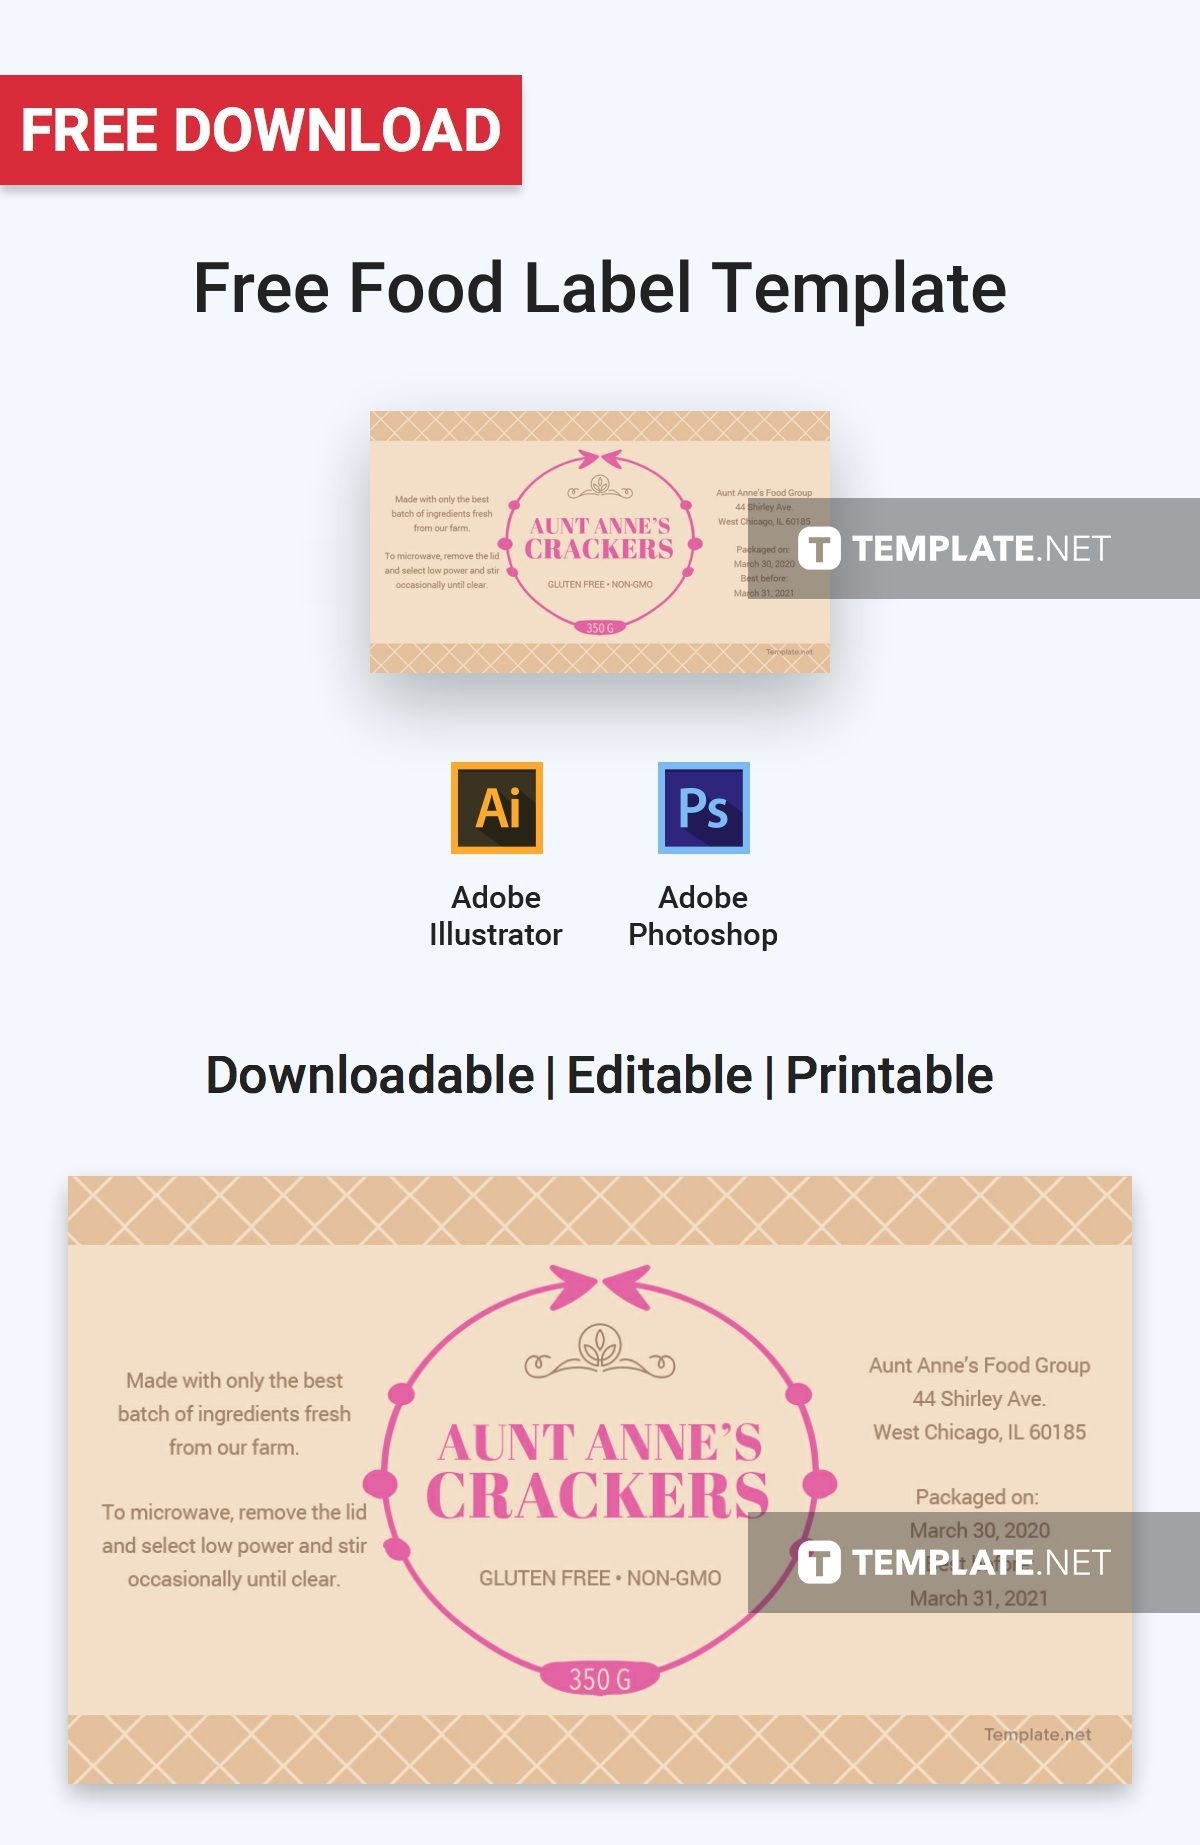 006 Phenomenal Microsoft Word Label Template Free Download High Definition Full